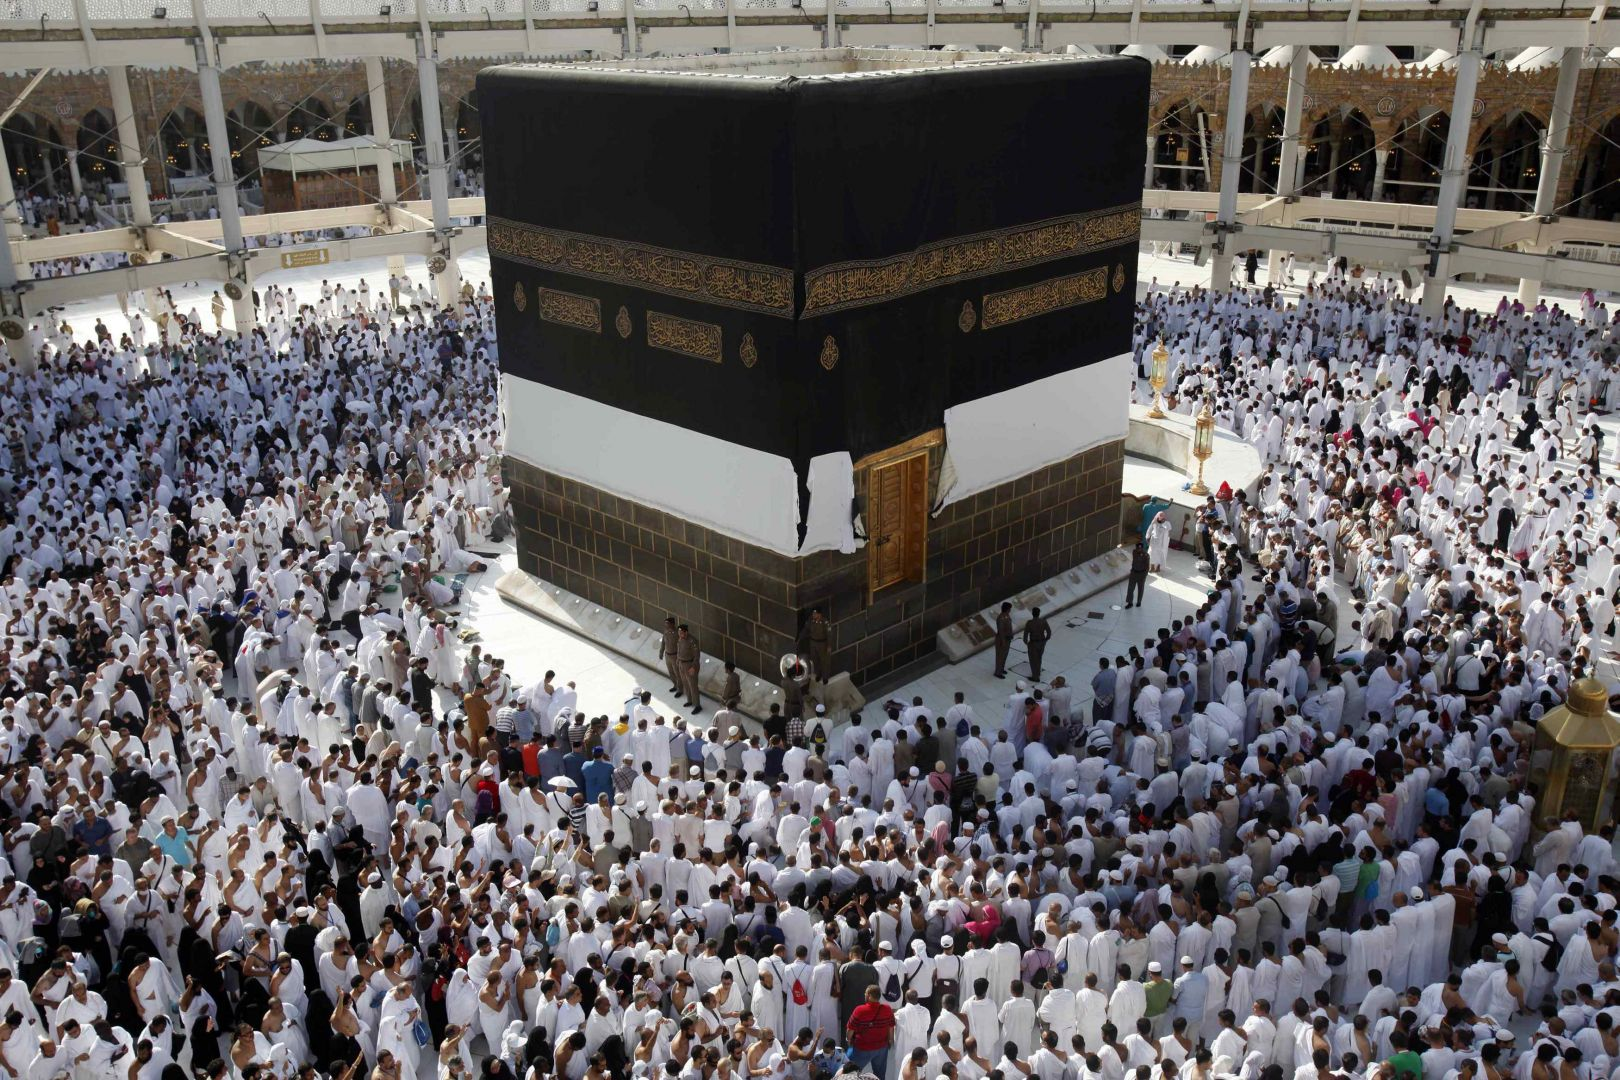 Saudi cleric denounces 'lies' after Haj tragedy